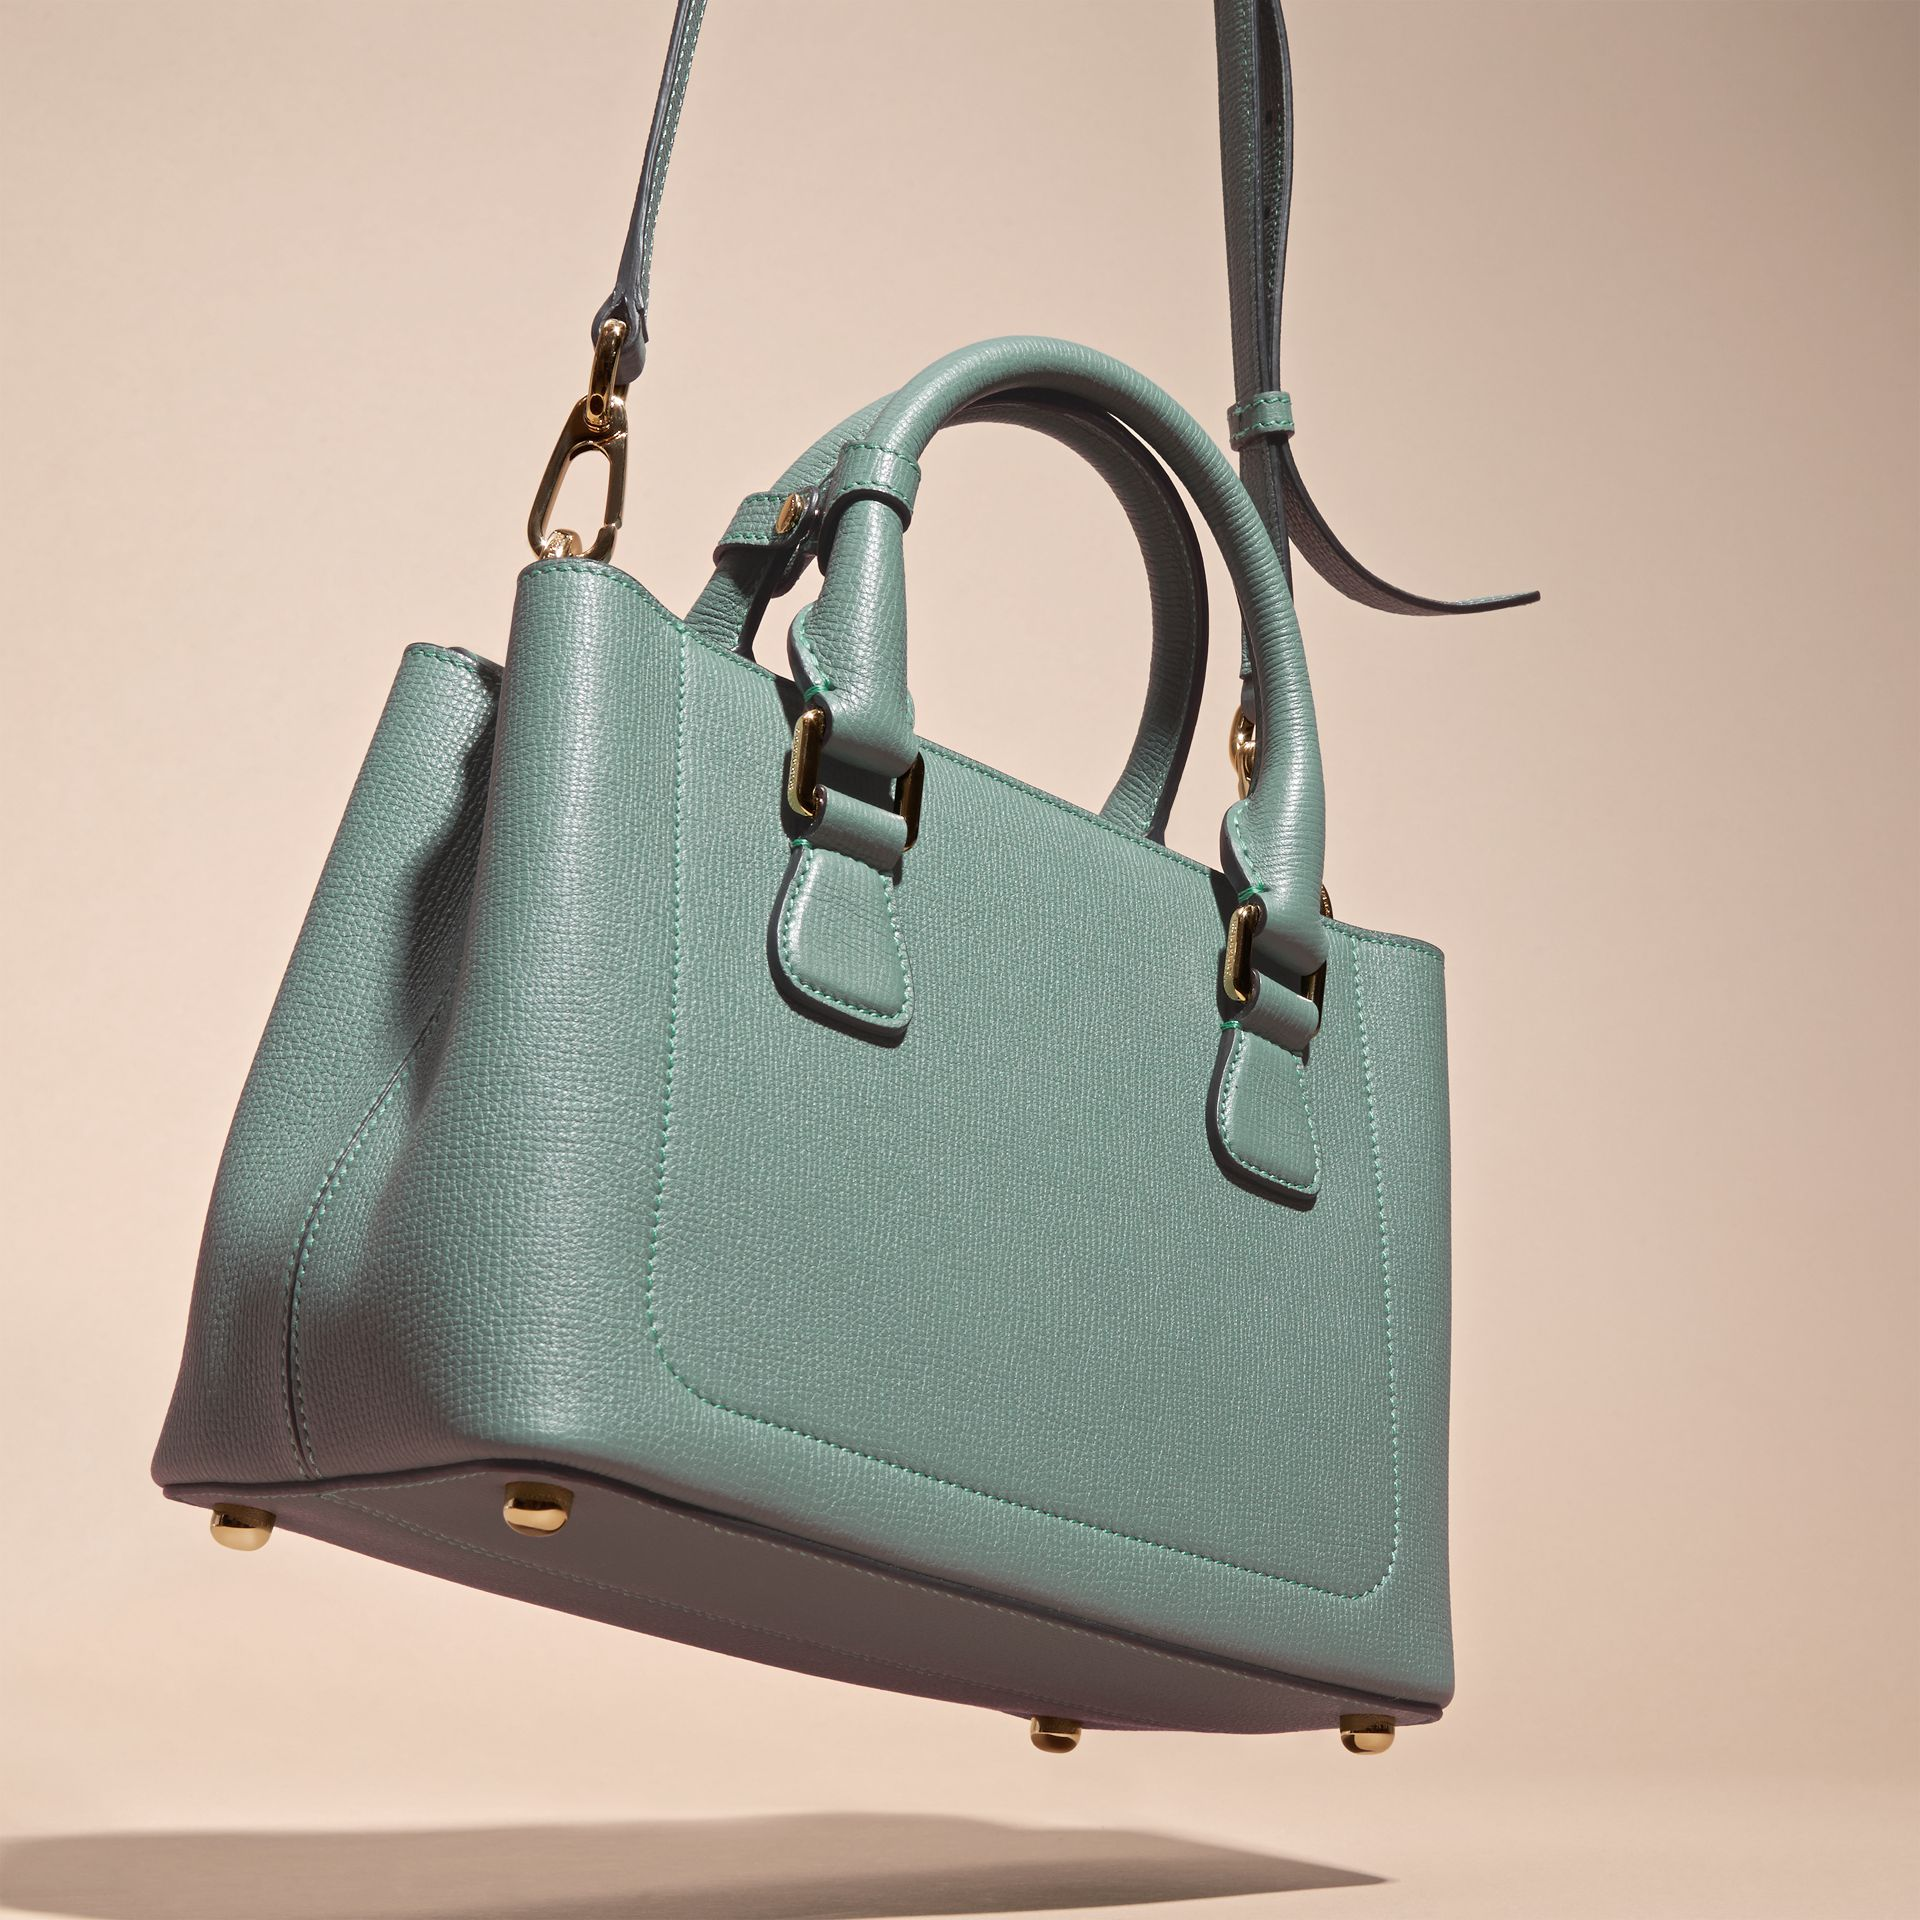 Smokey green The Small Saddle Bag in Grainy Bonded Leather Smokey Green - gallery image 4